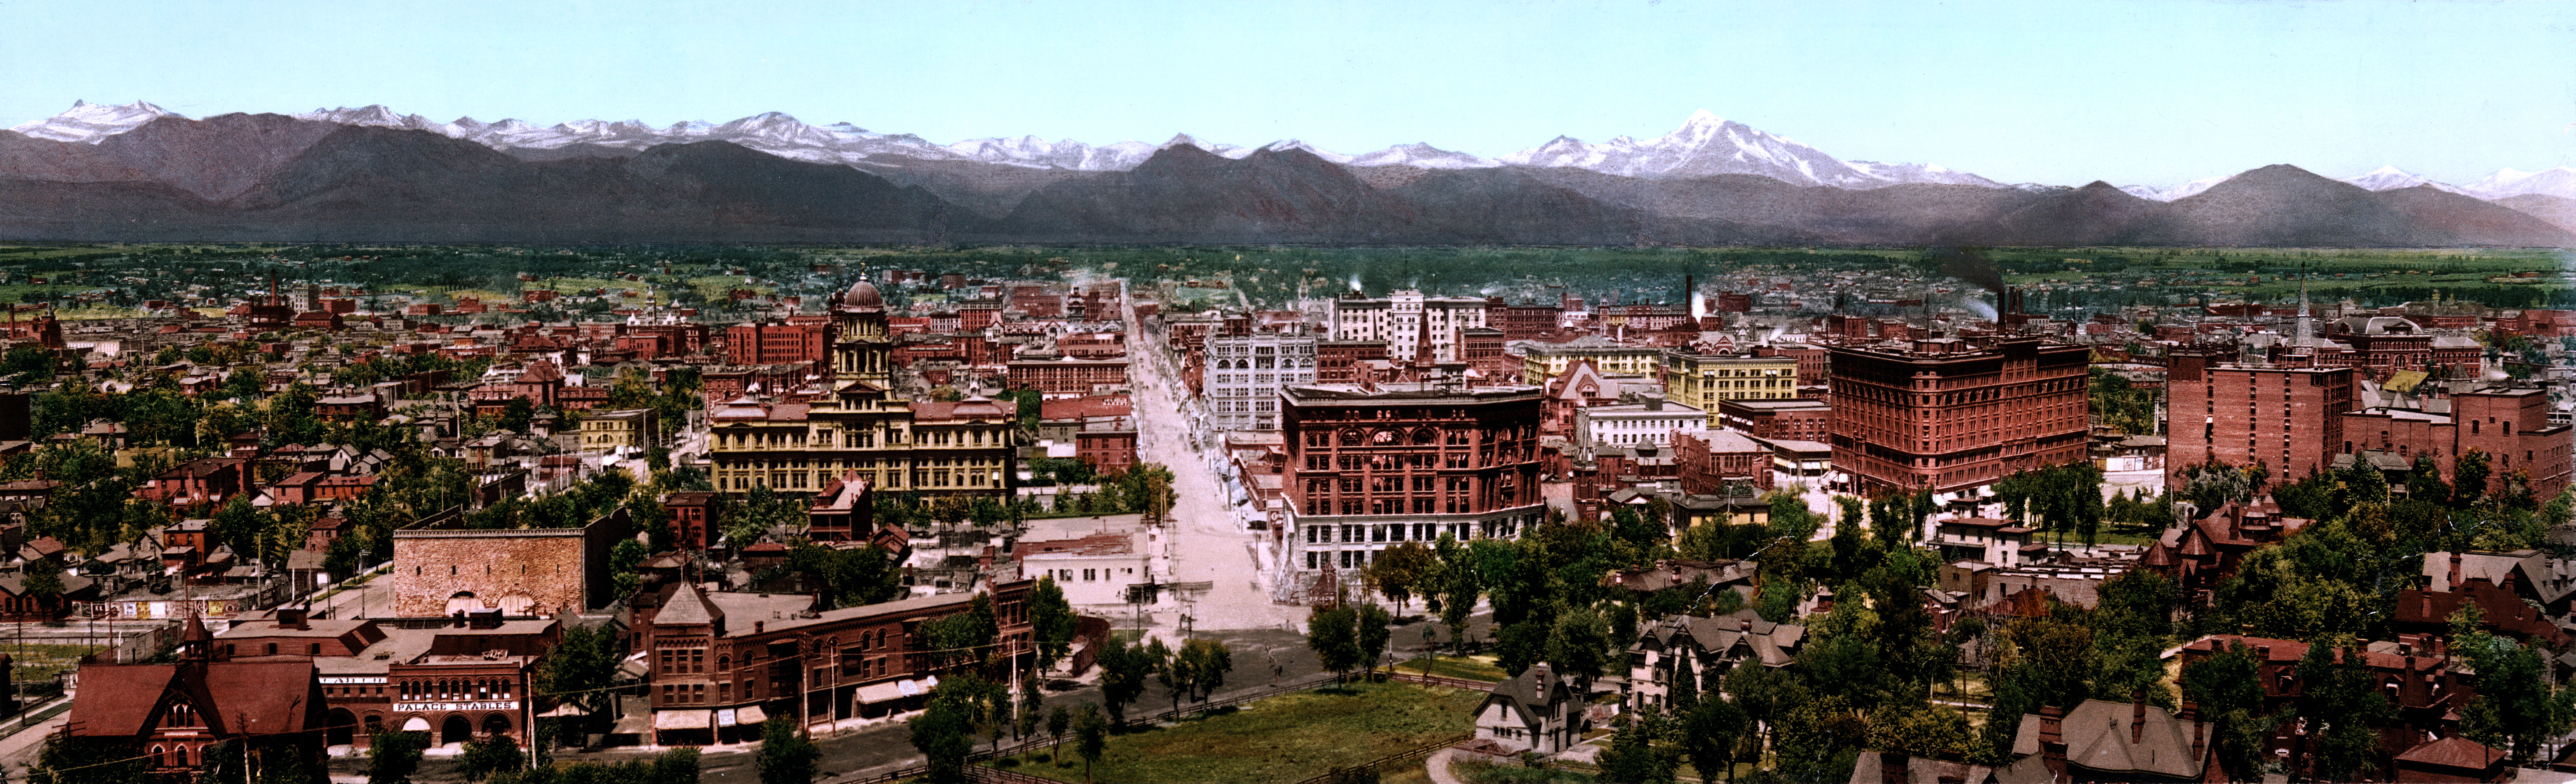 Panorama_of_Denver_Colorado_1898 (3).jpg